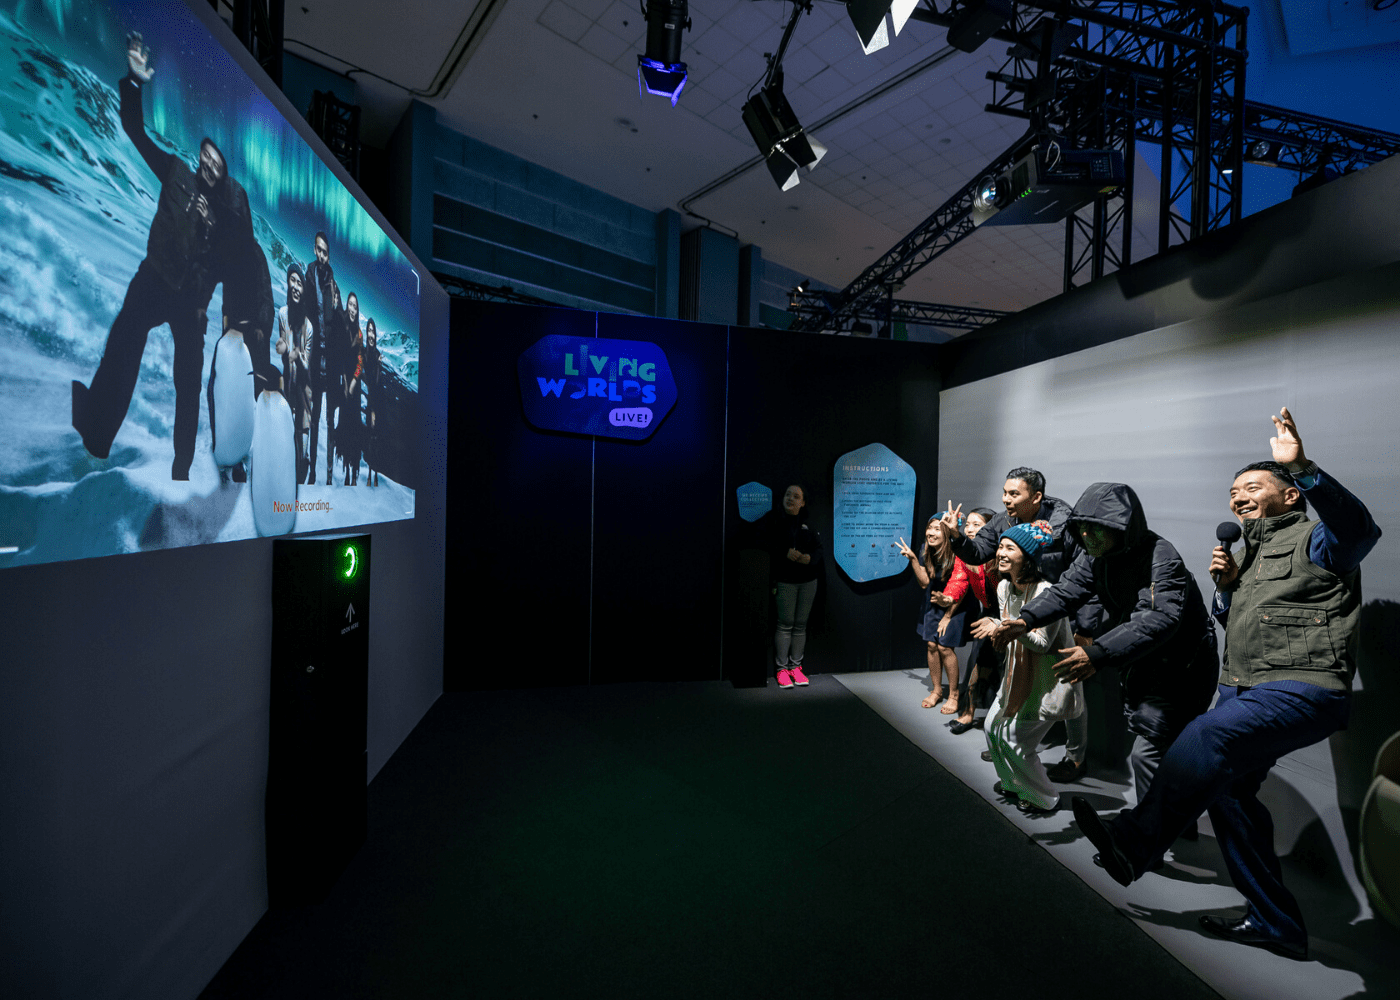 Living Worlds: An Animal Planet Experience exhibition